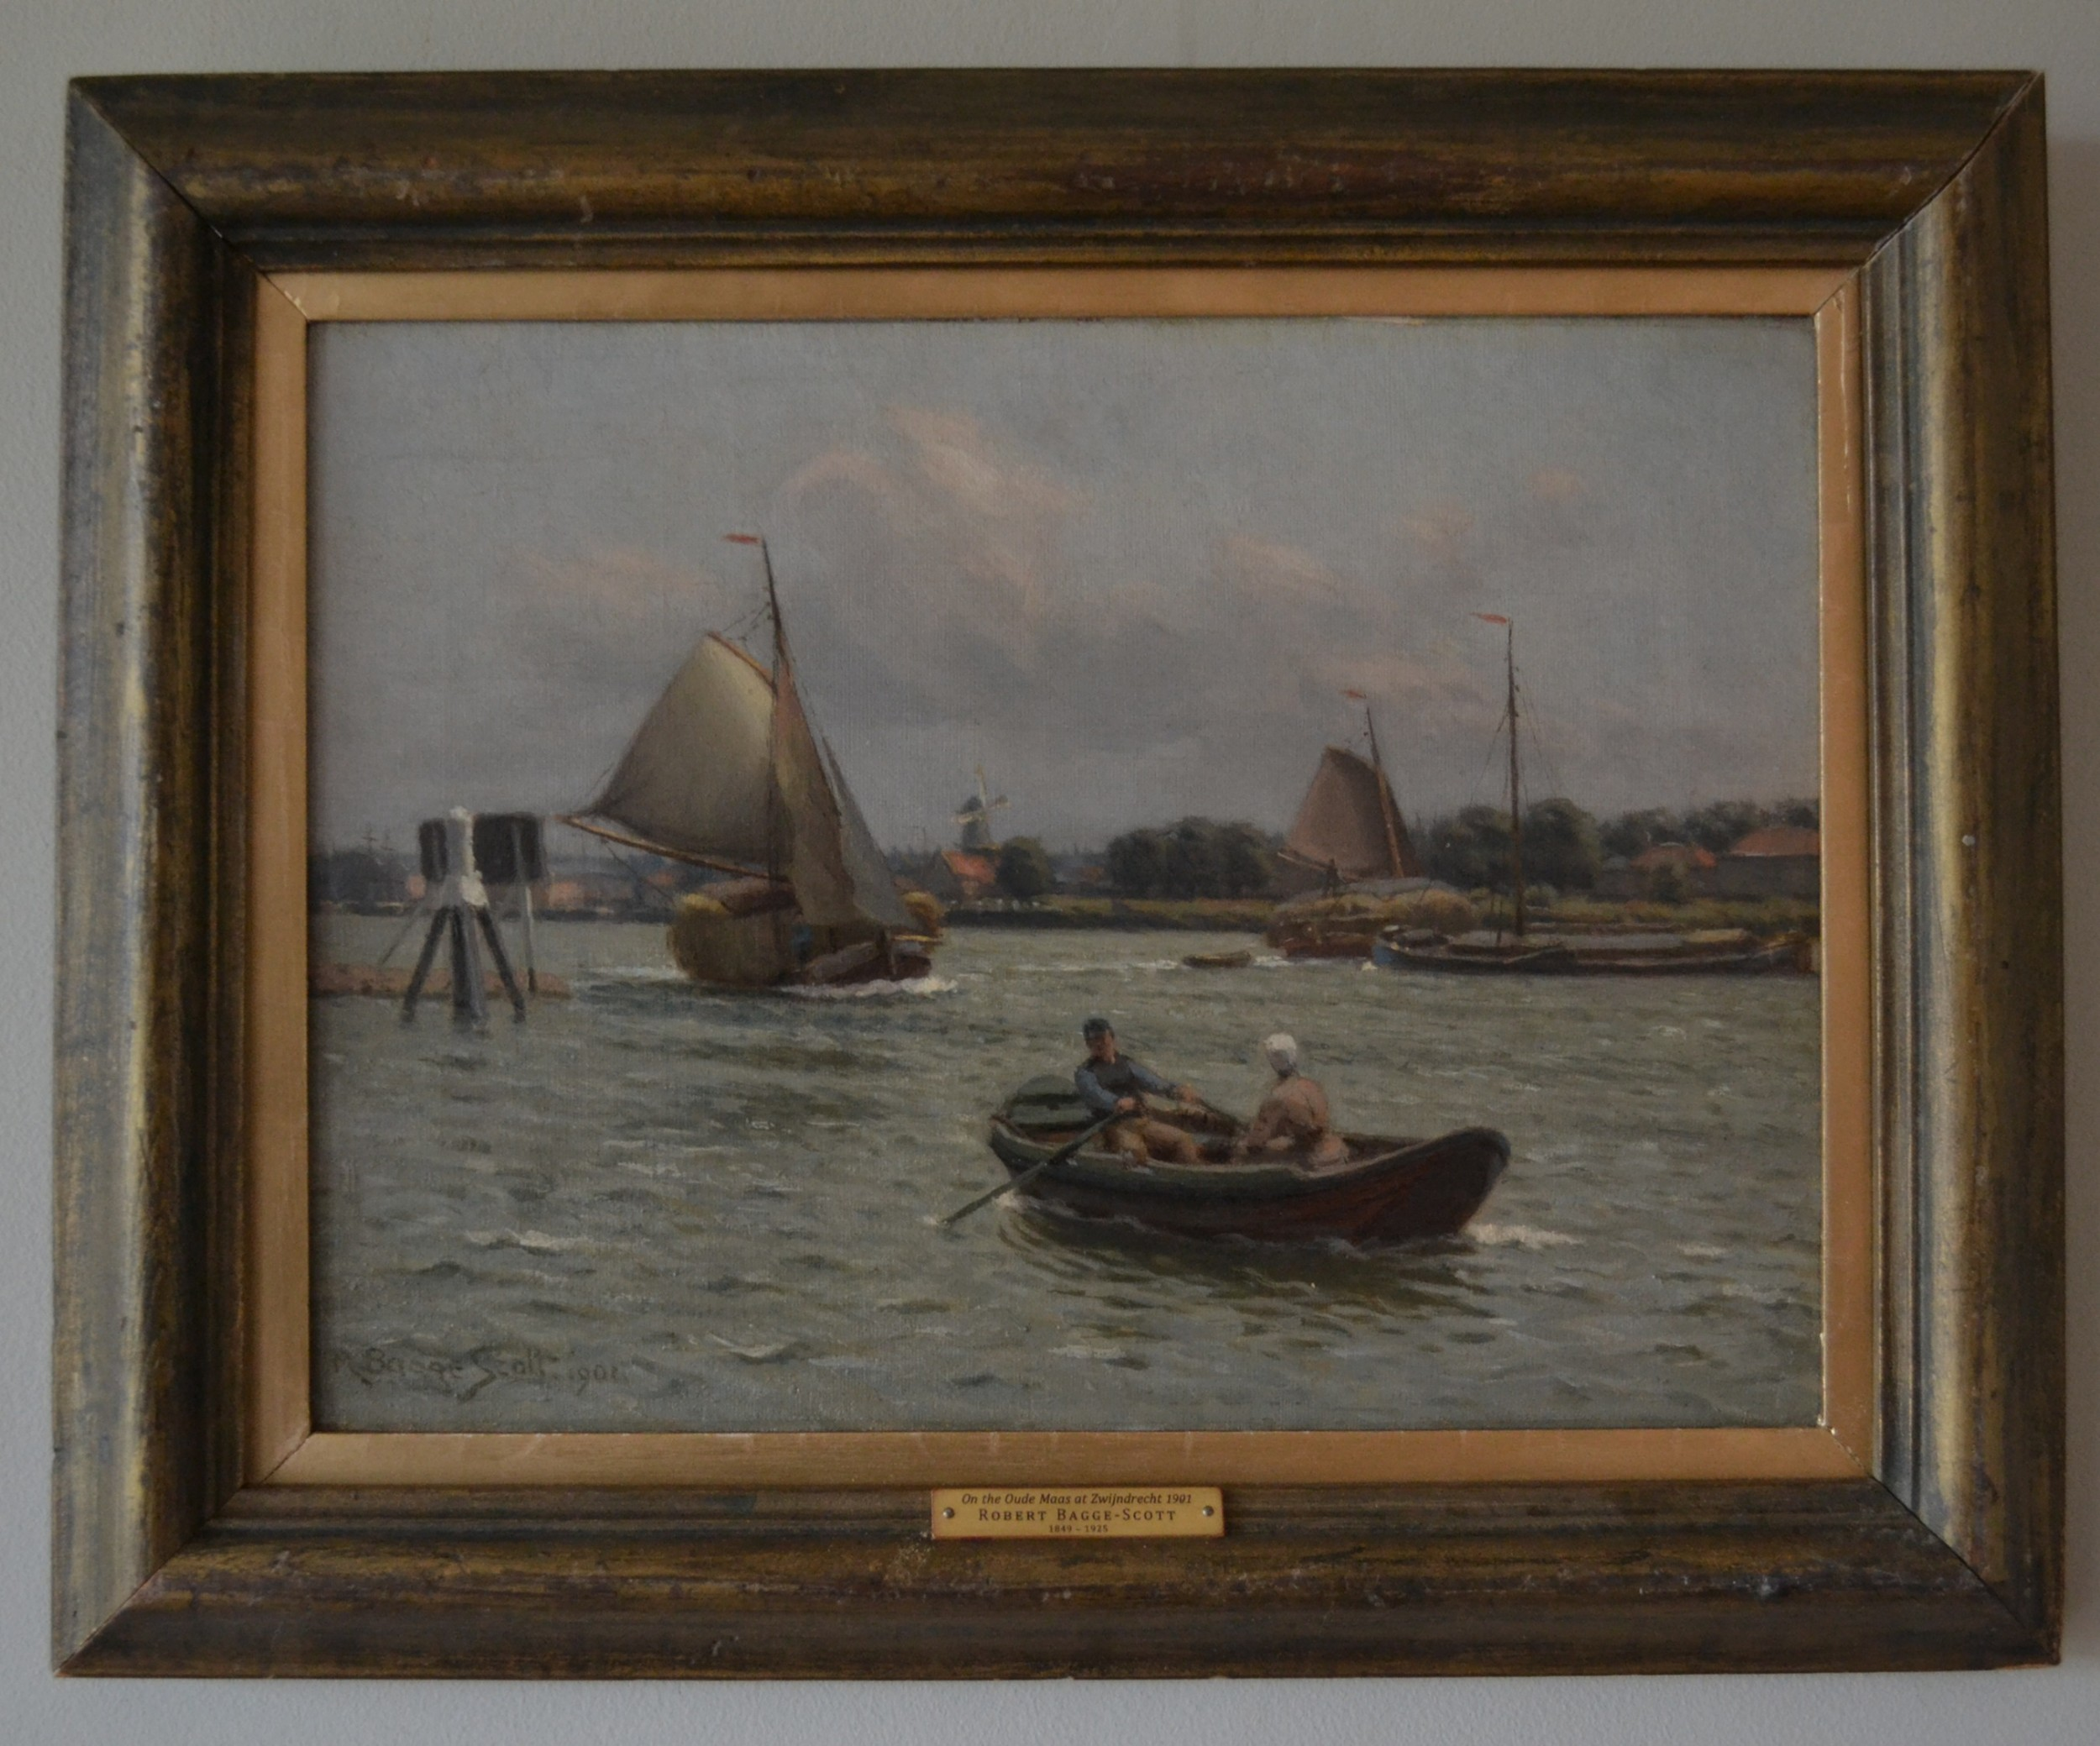 robert baggescott british 18491925 riverscape on the oude maas at zwijindrecht 1901oil on canvas